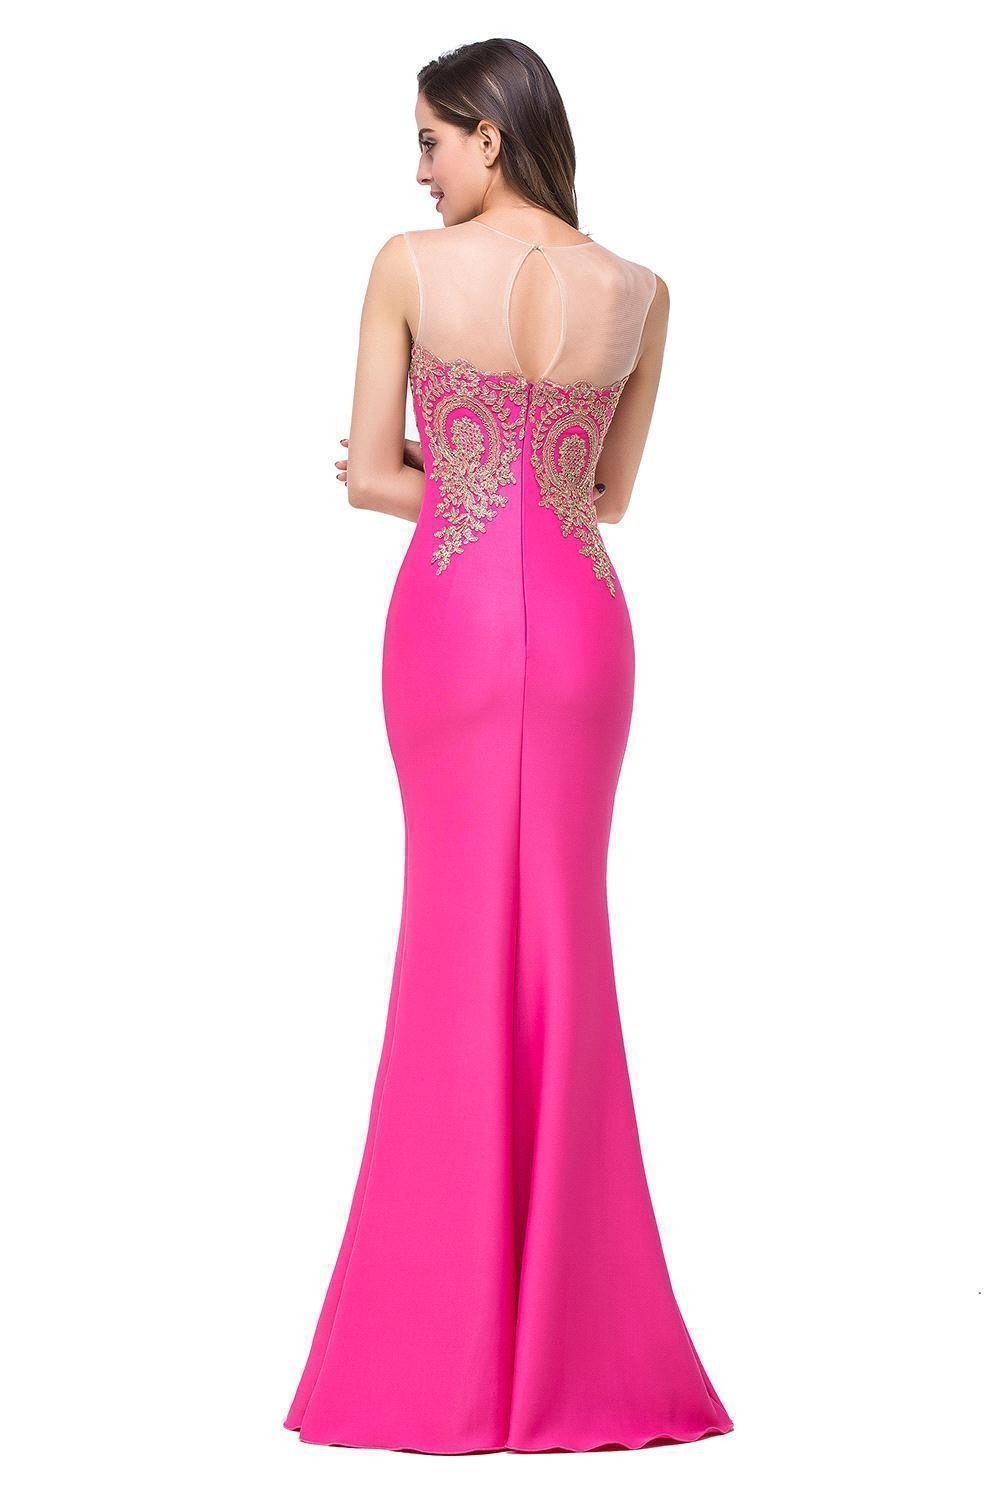 Stunning 😍 😍 Flowing, Long Mermaid Style Ball Gown - New 2018 ...